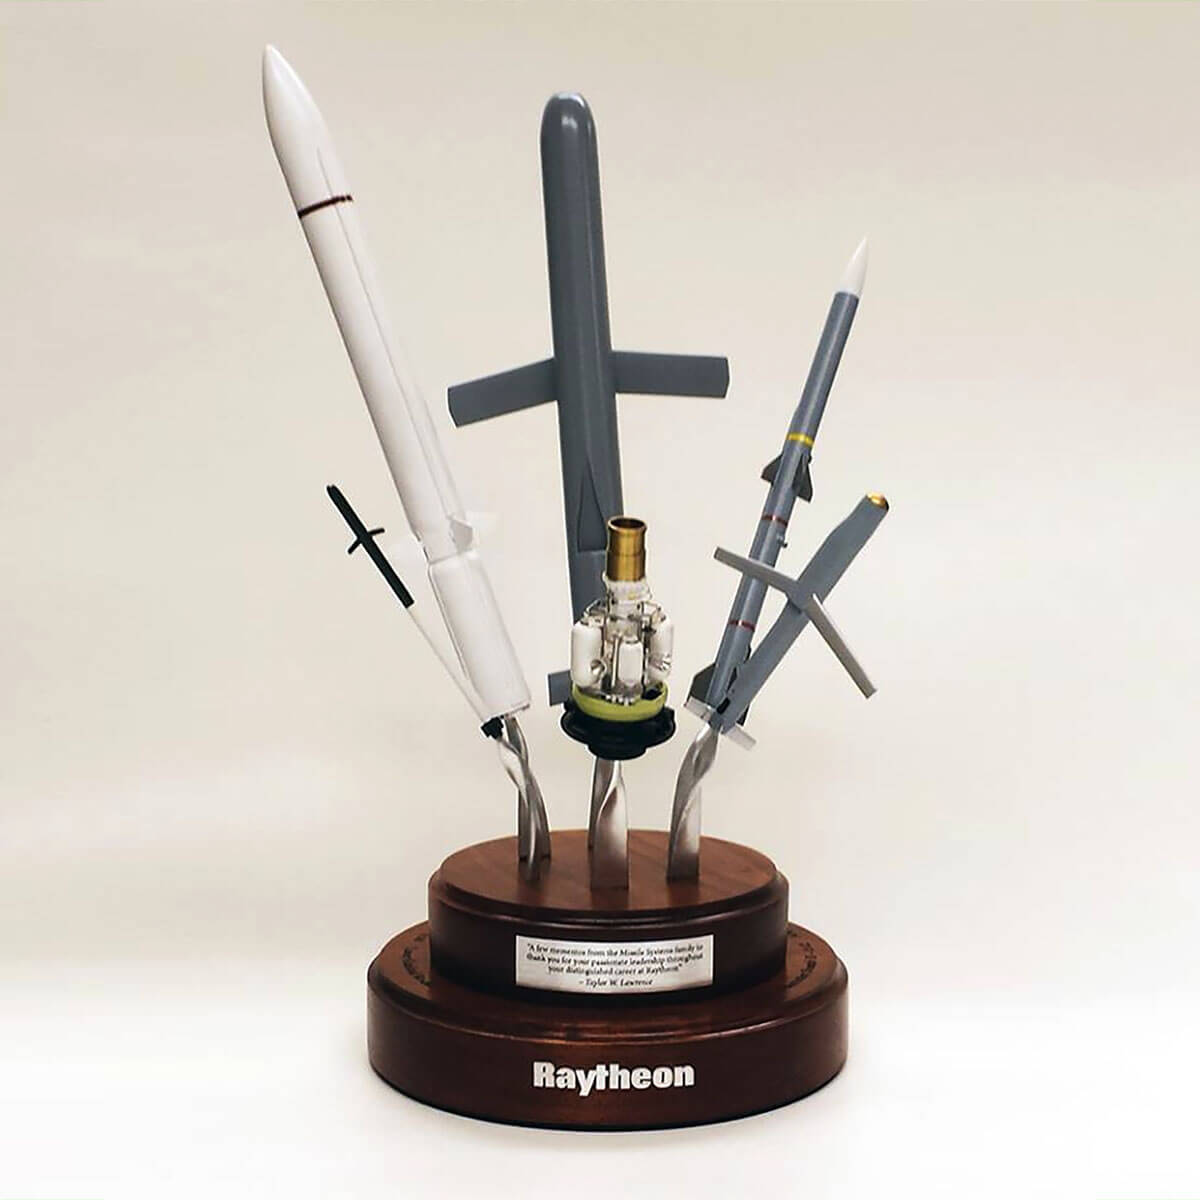 Raytheon Award